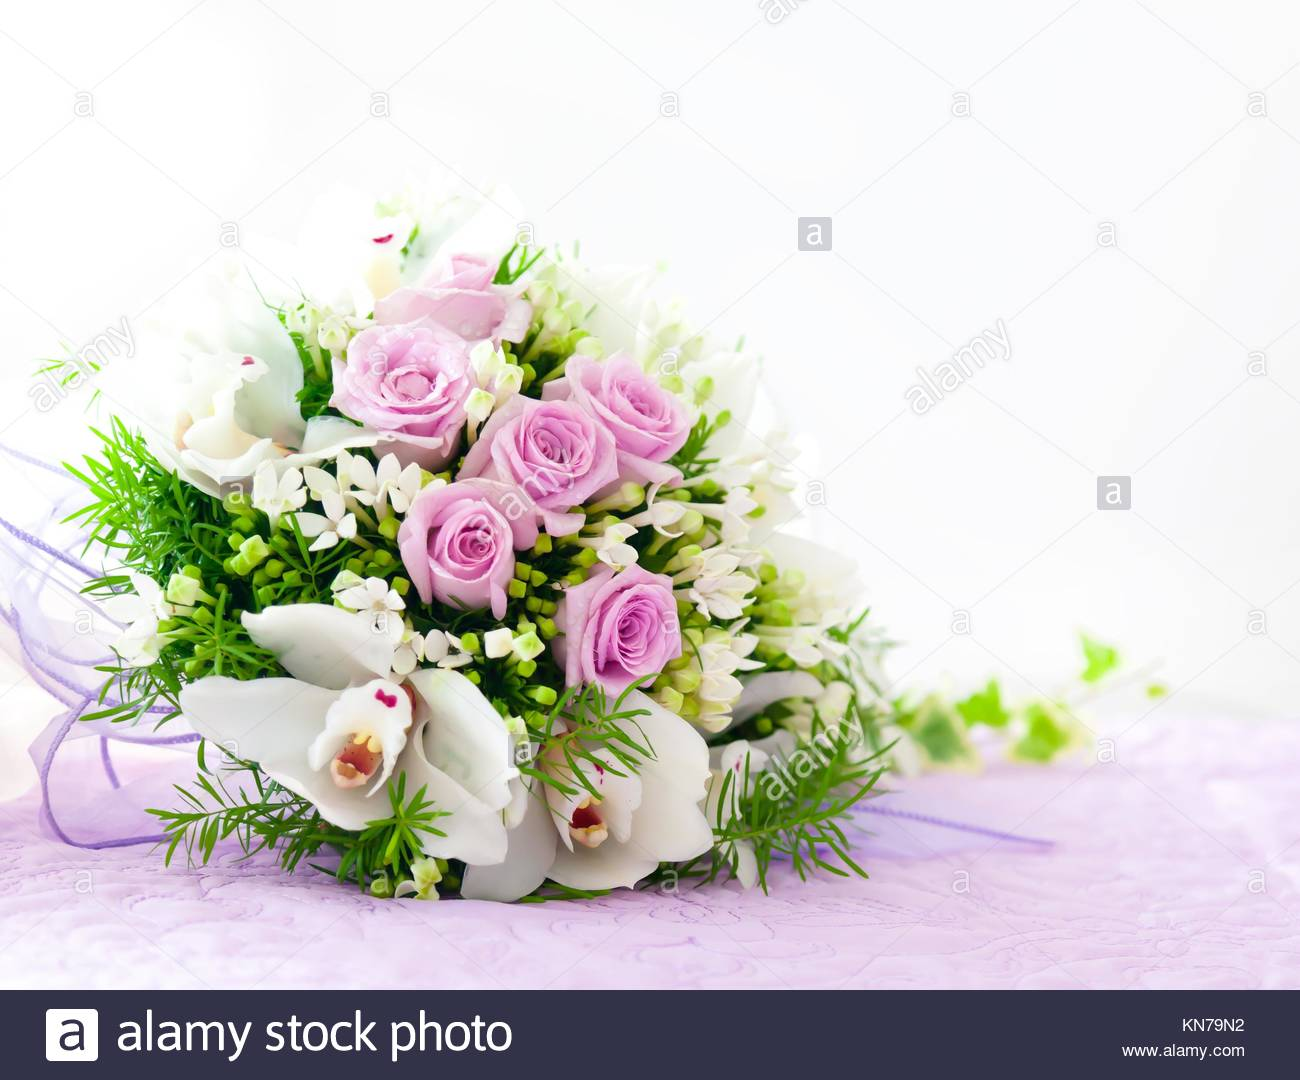 Wedding Pink Roses And White Orchid Bouquet Stock Photo 167962398